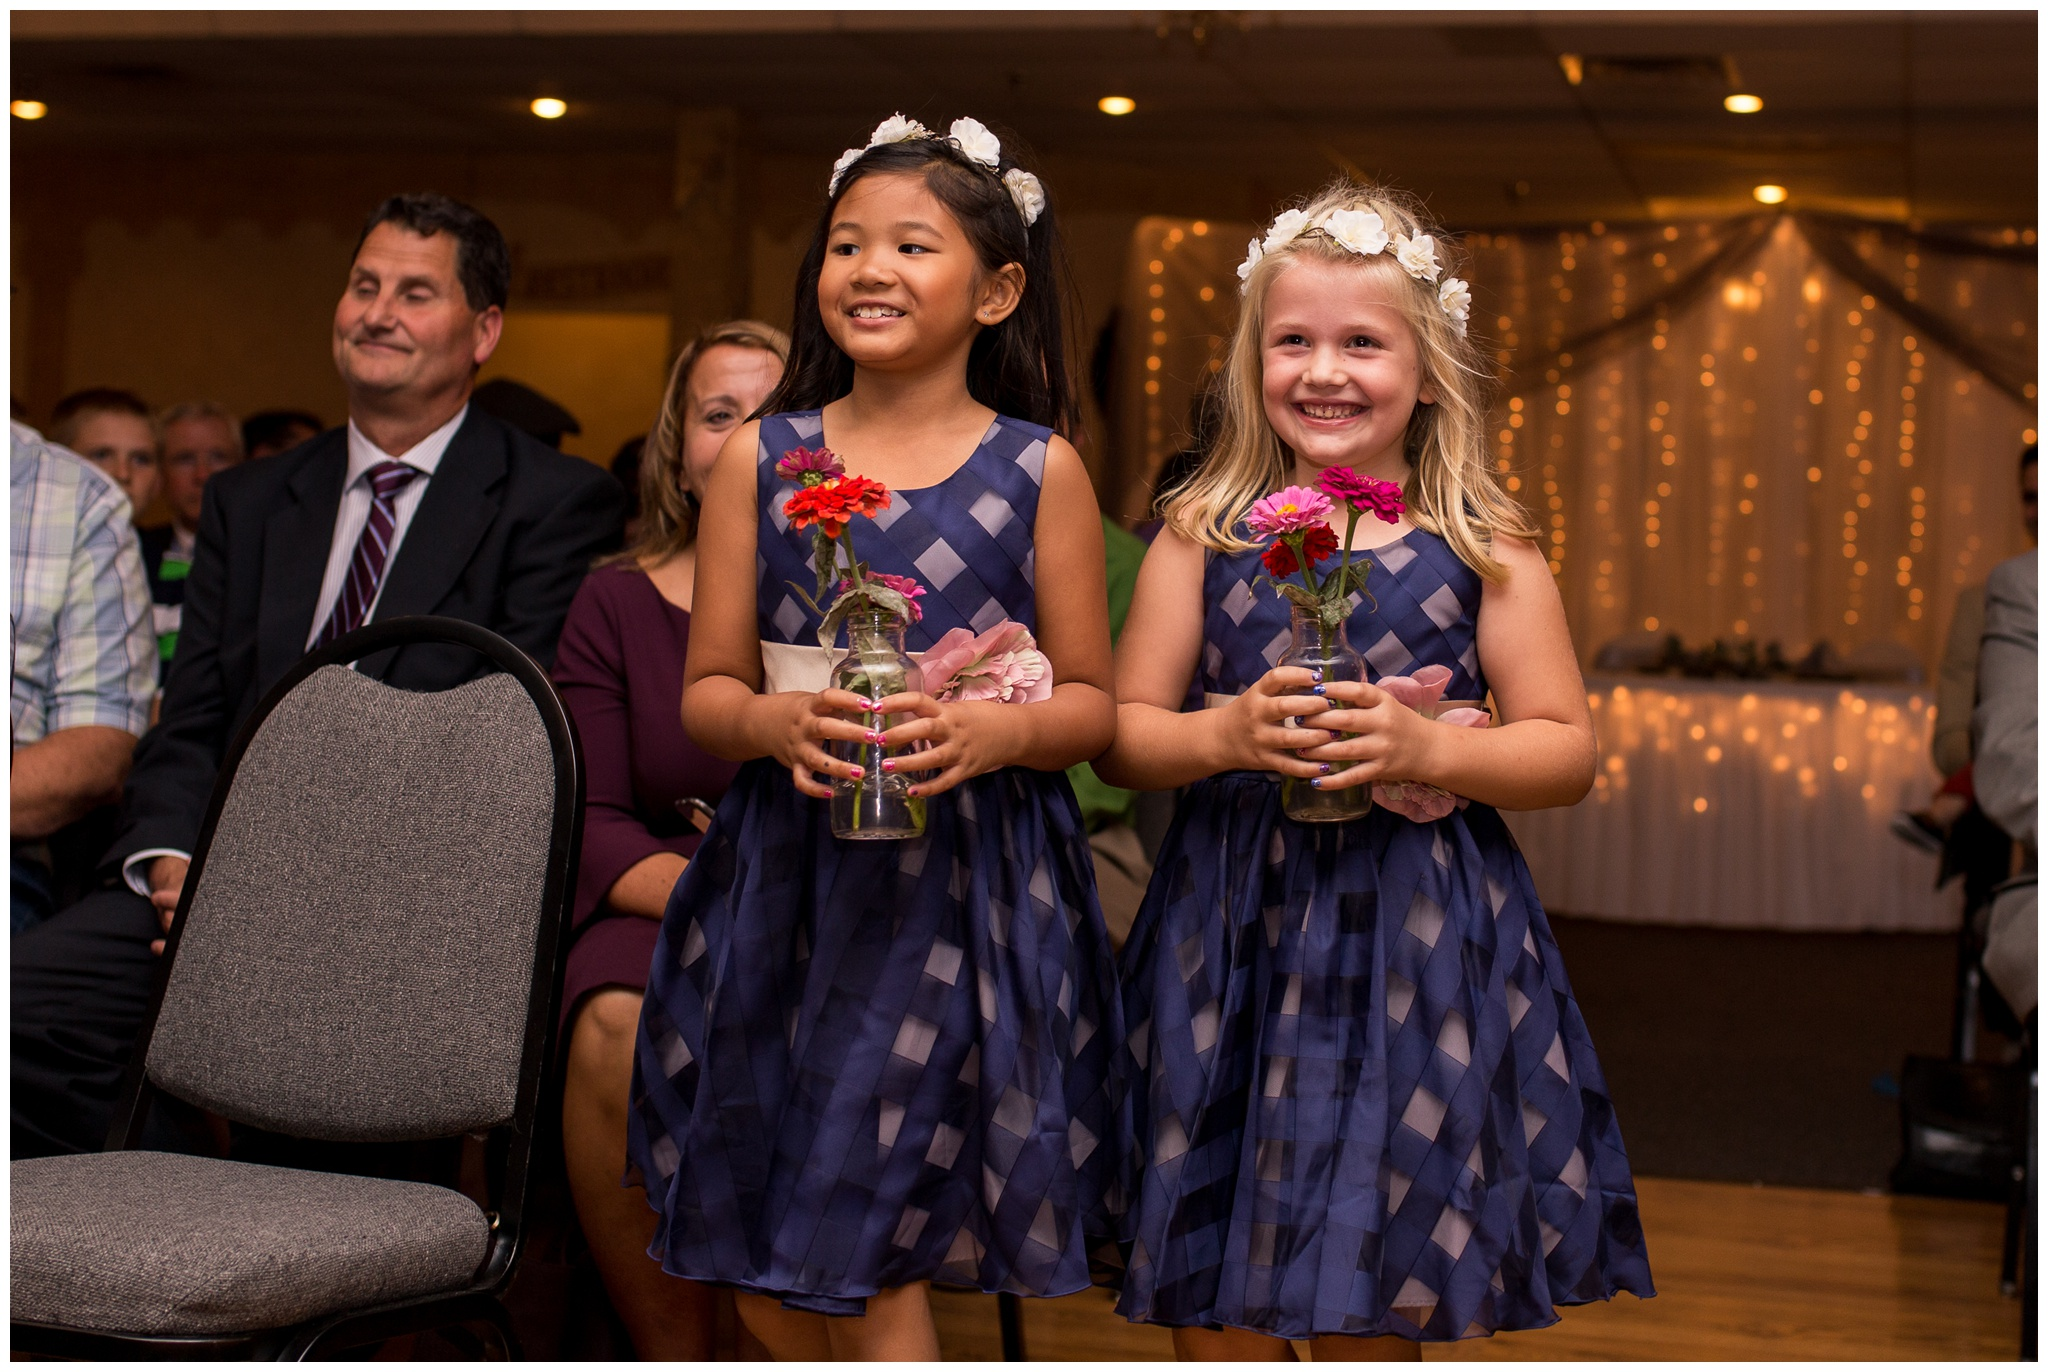 flower girls entering wedding ceremony at Romer's Catering in Greenville Ohio